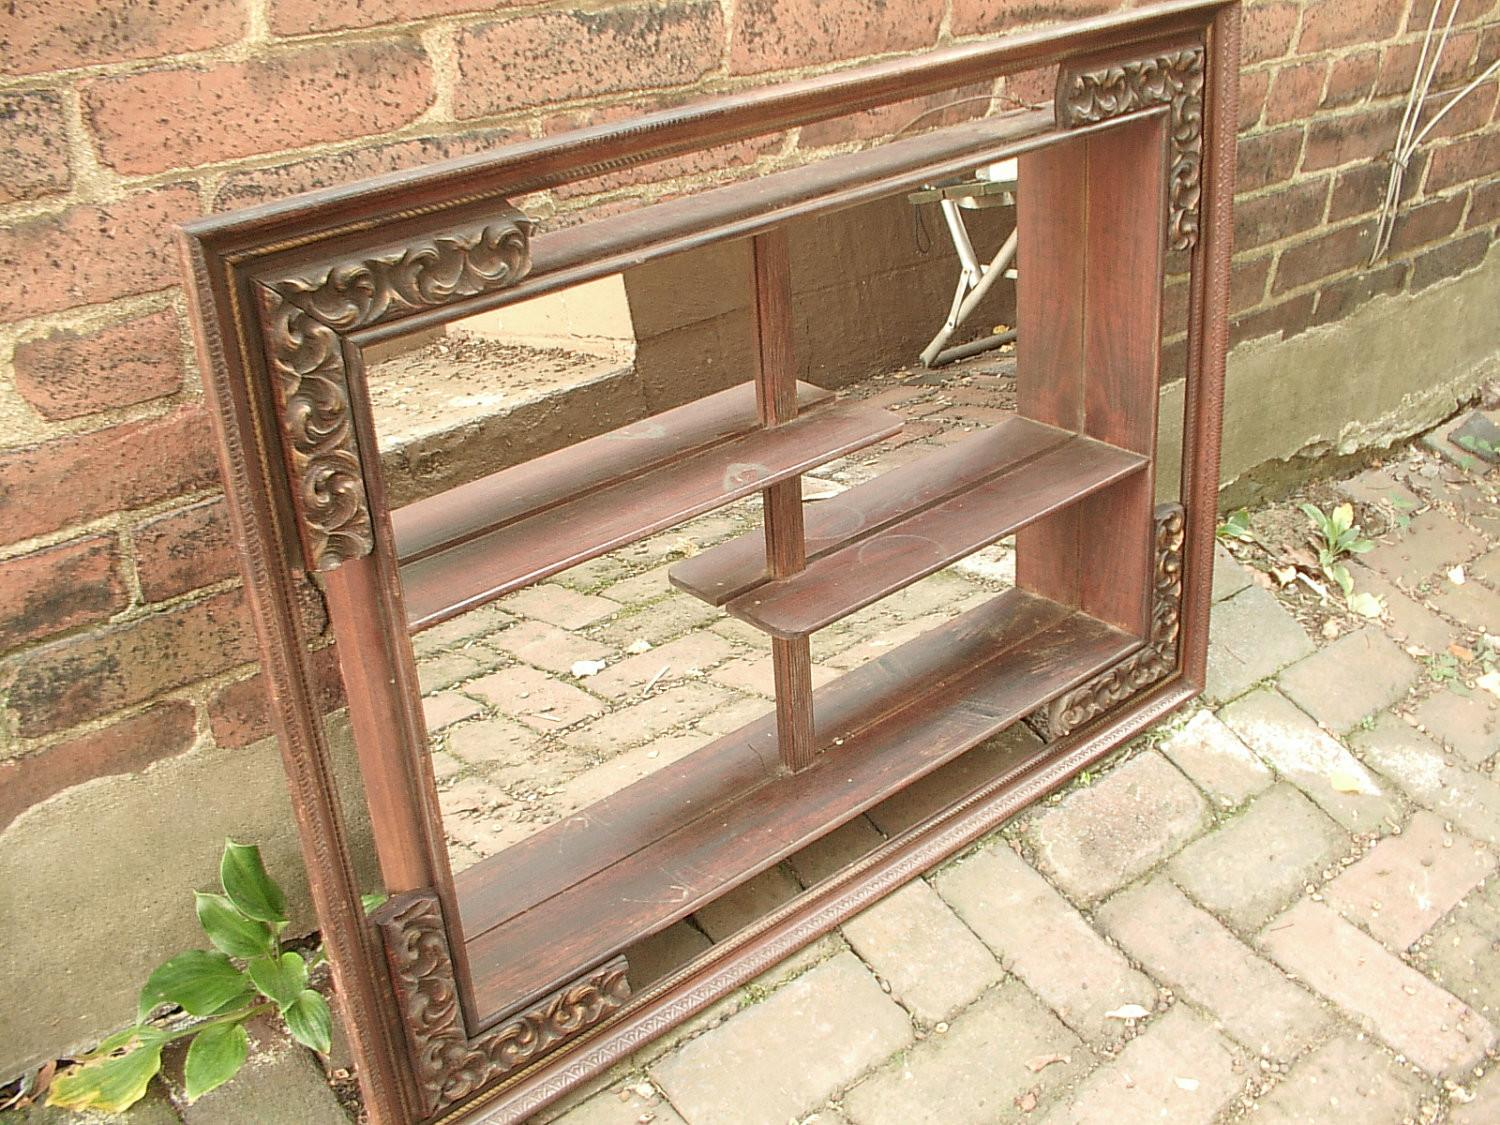 Antique Wall Mirrored Shelves Wood Shabby Chic